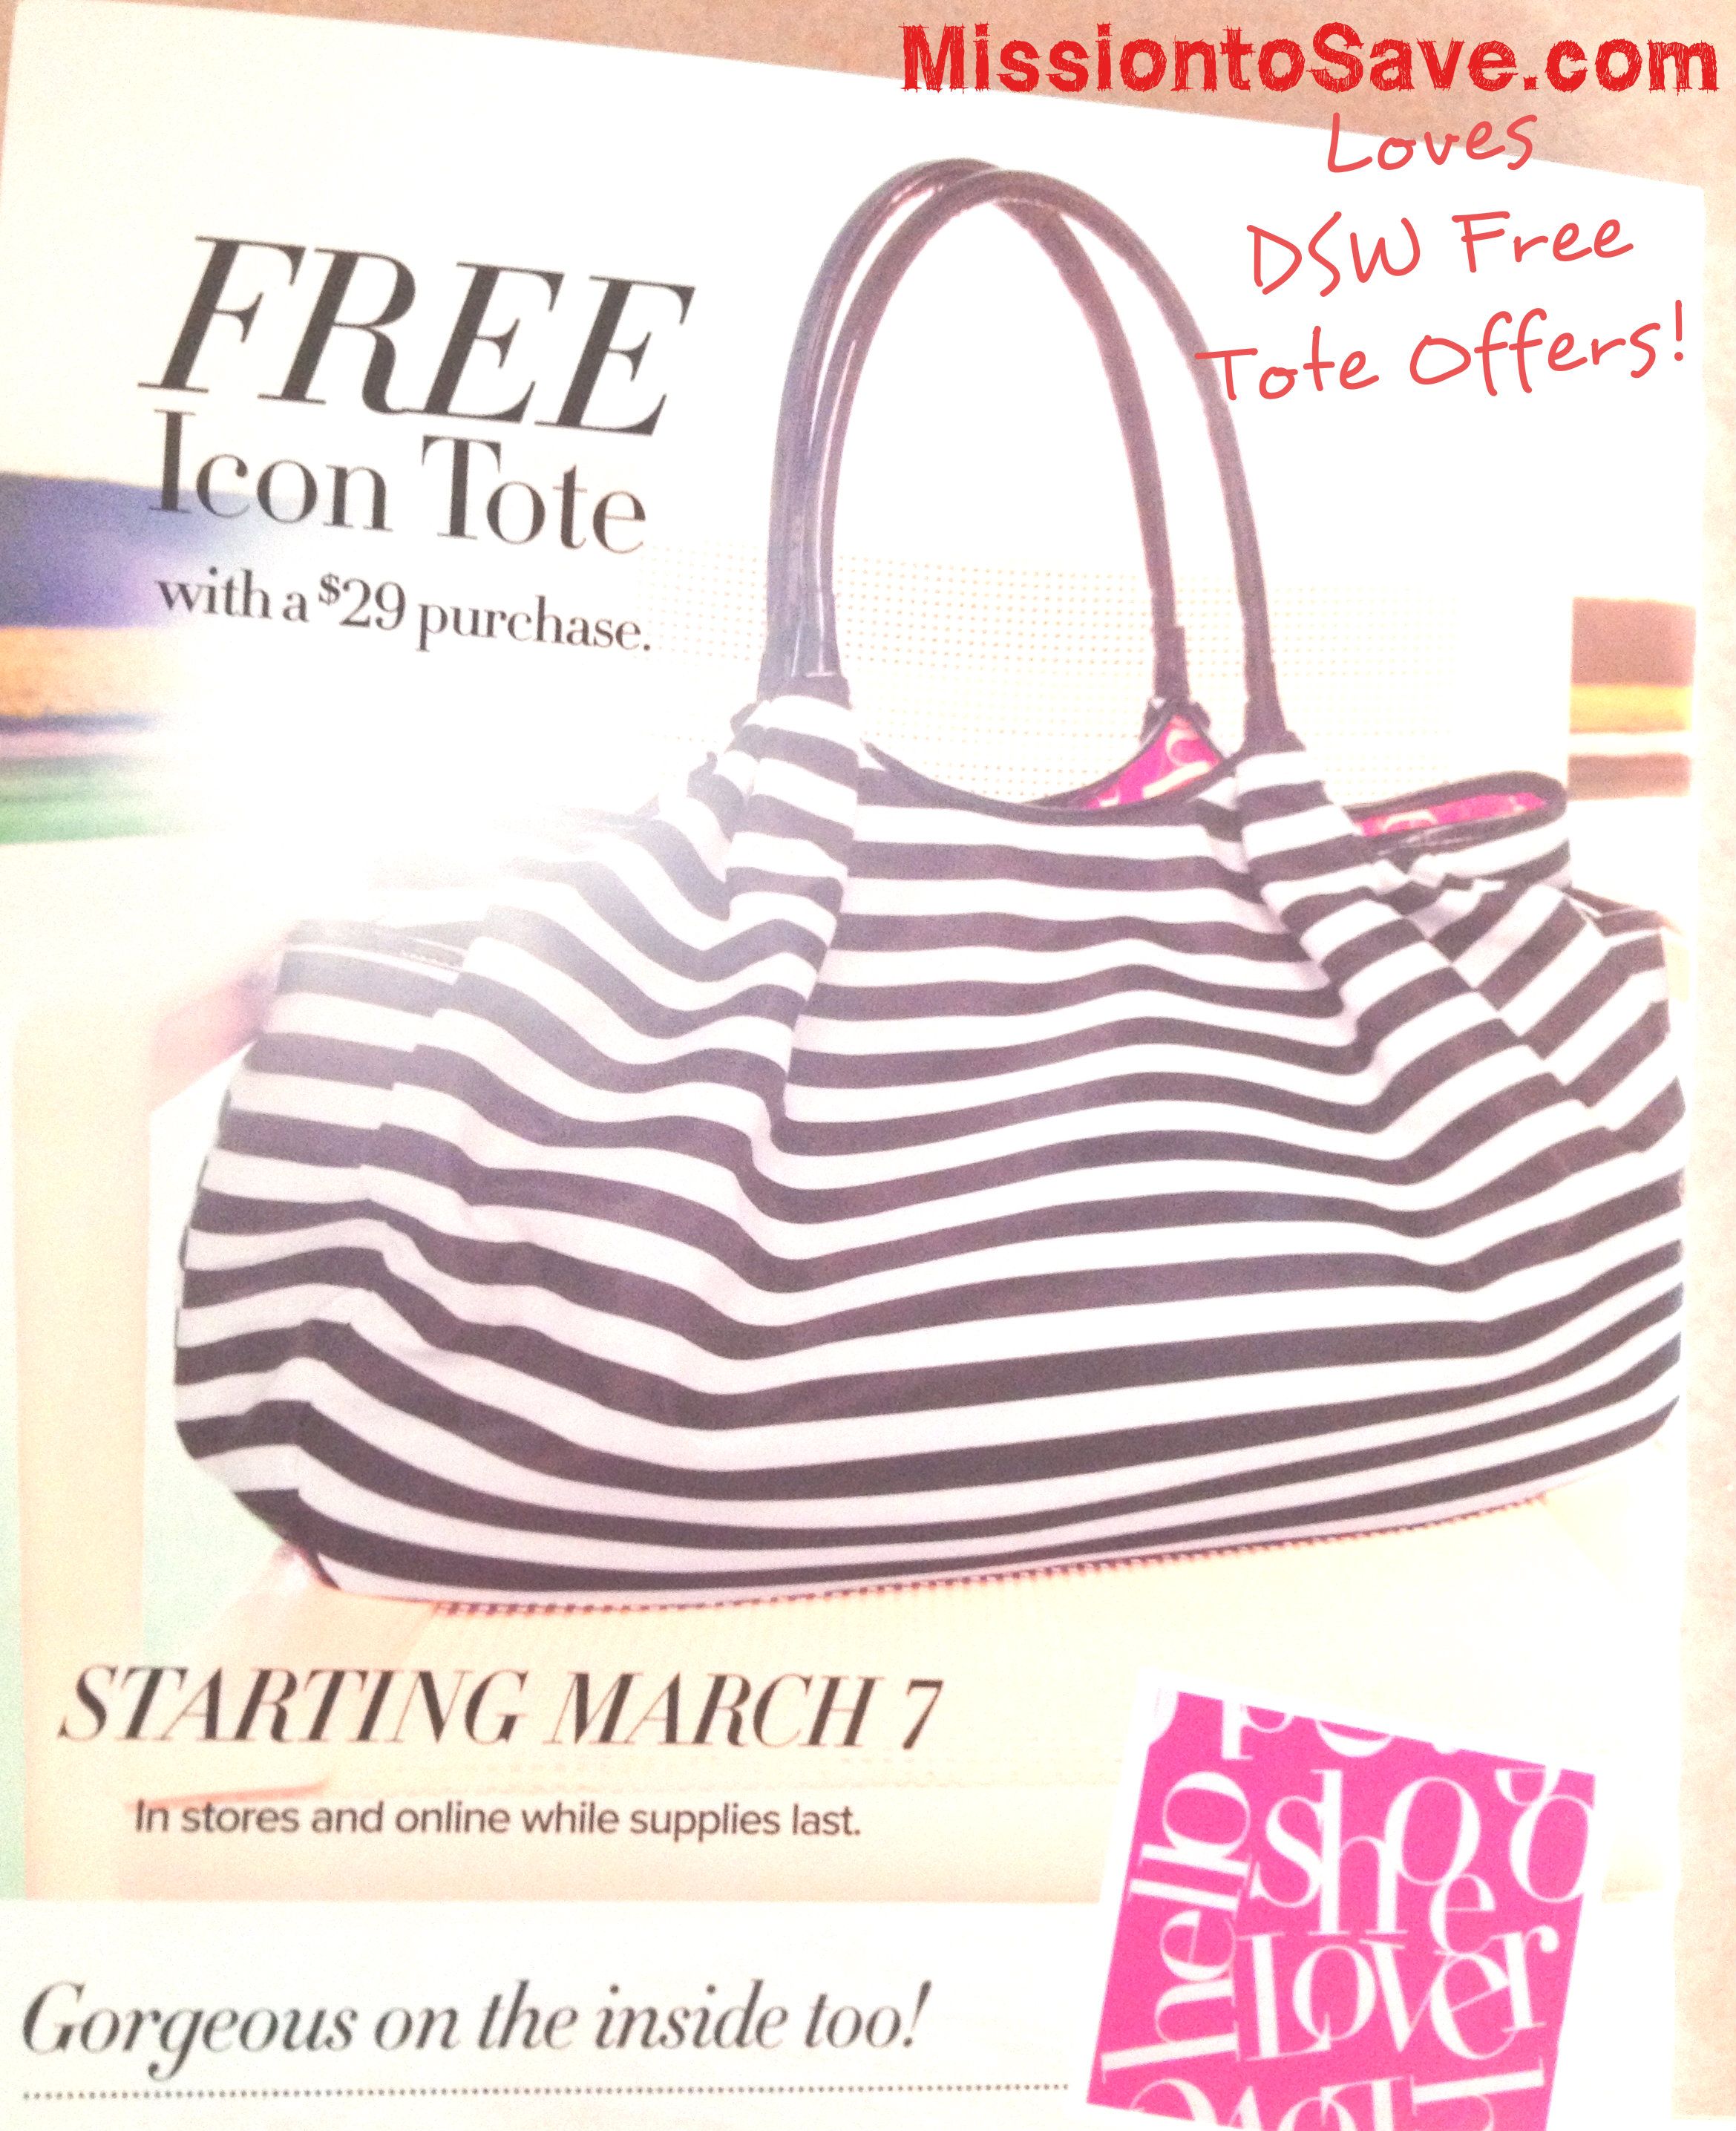 DSW Free Tote March 2013